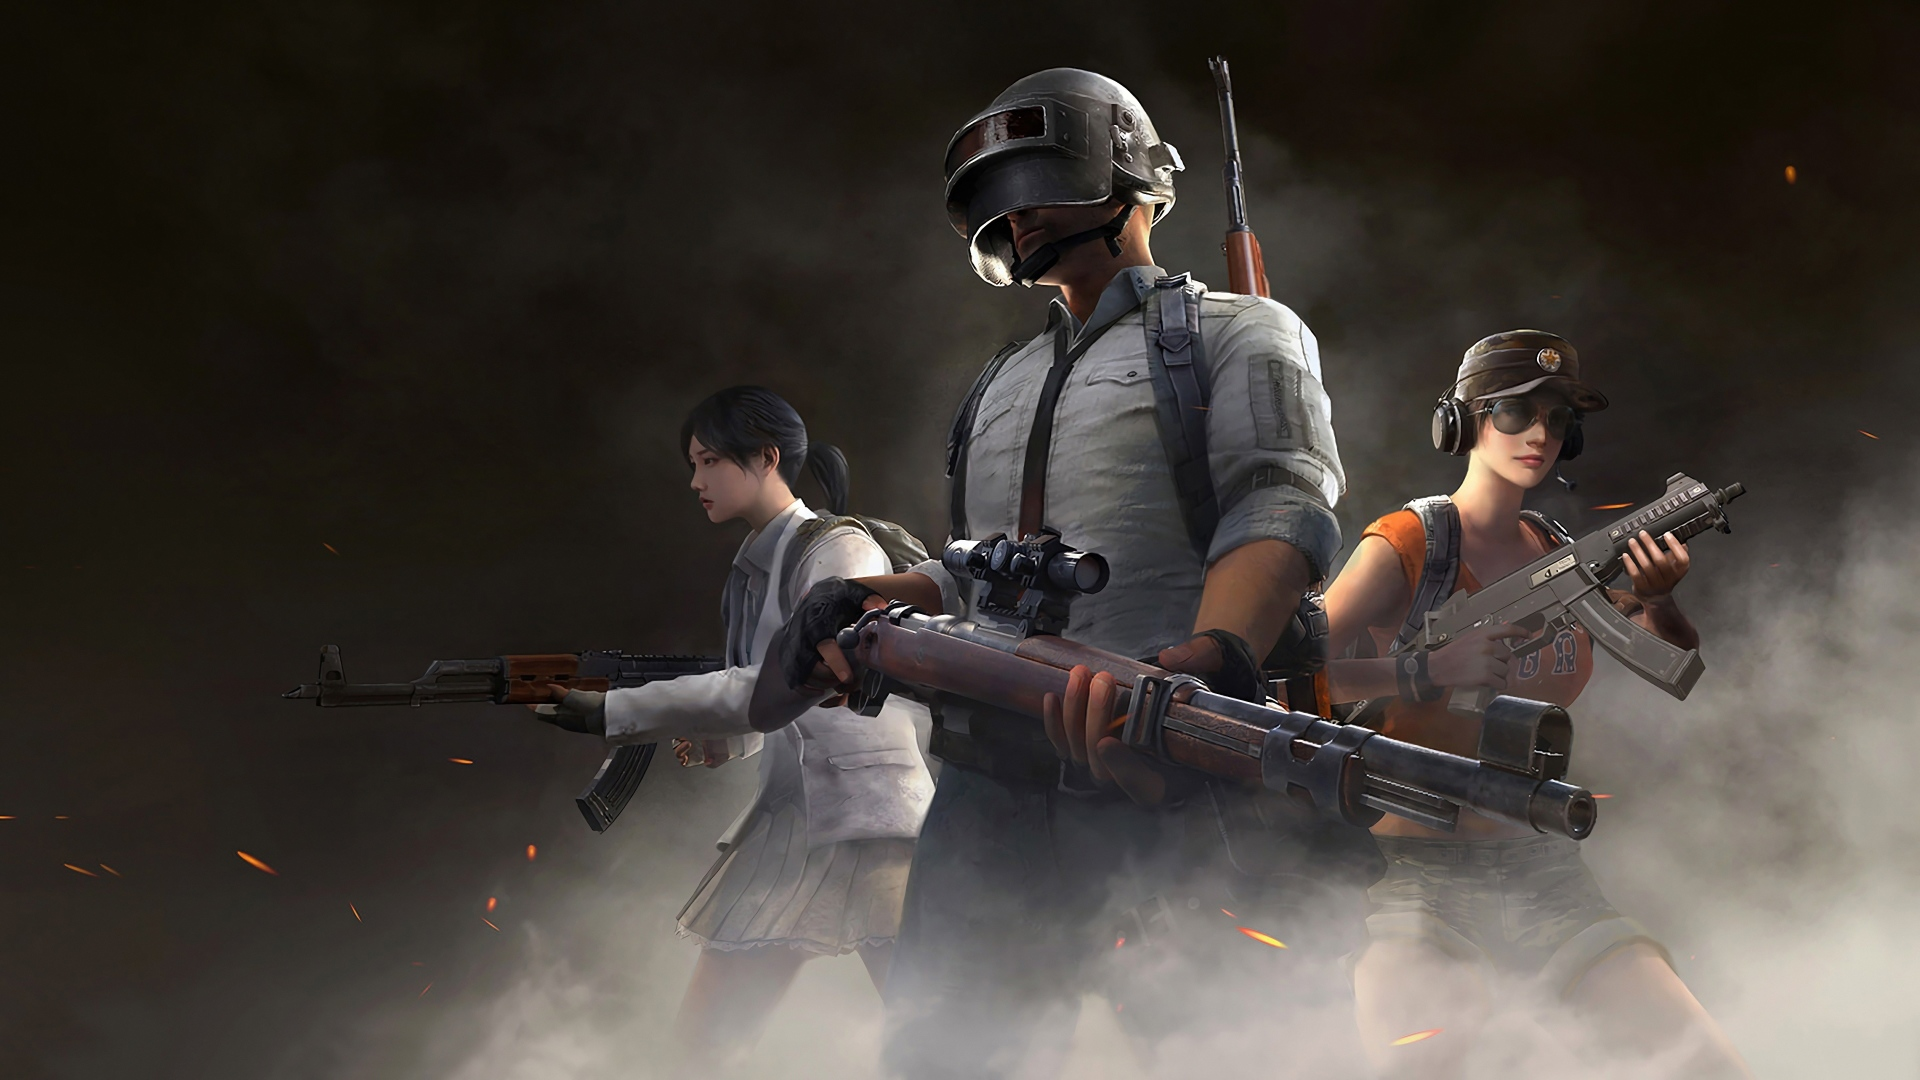 Pubg Wallpapers Hd Mobile: Download Pubg 1920x1080 Resolution, HD 4K Wallpaper